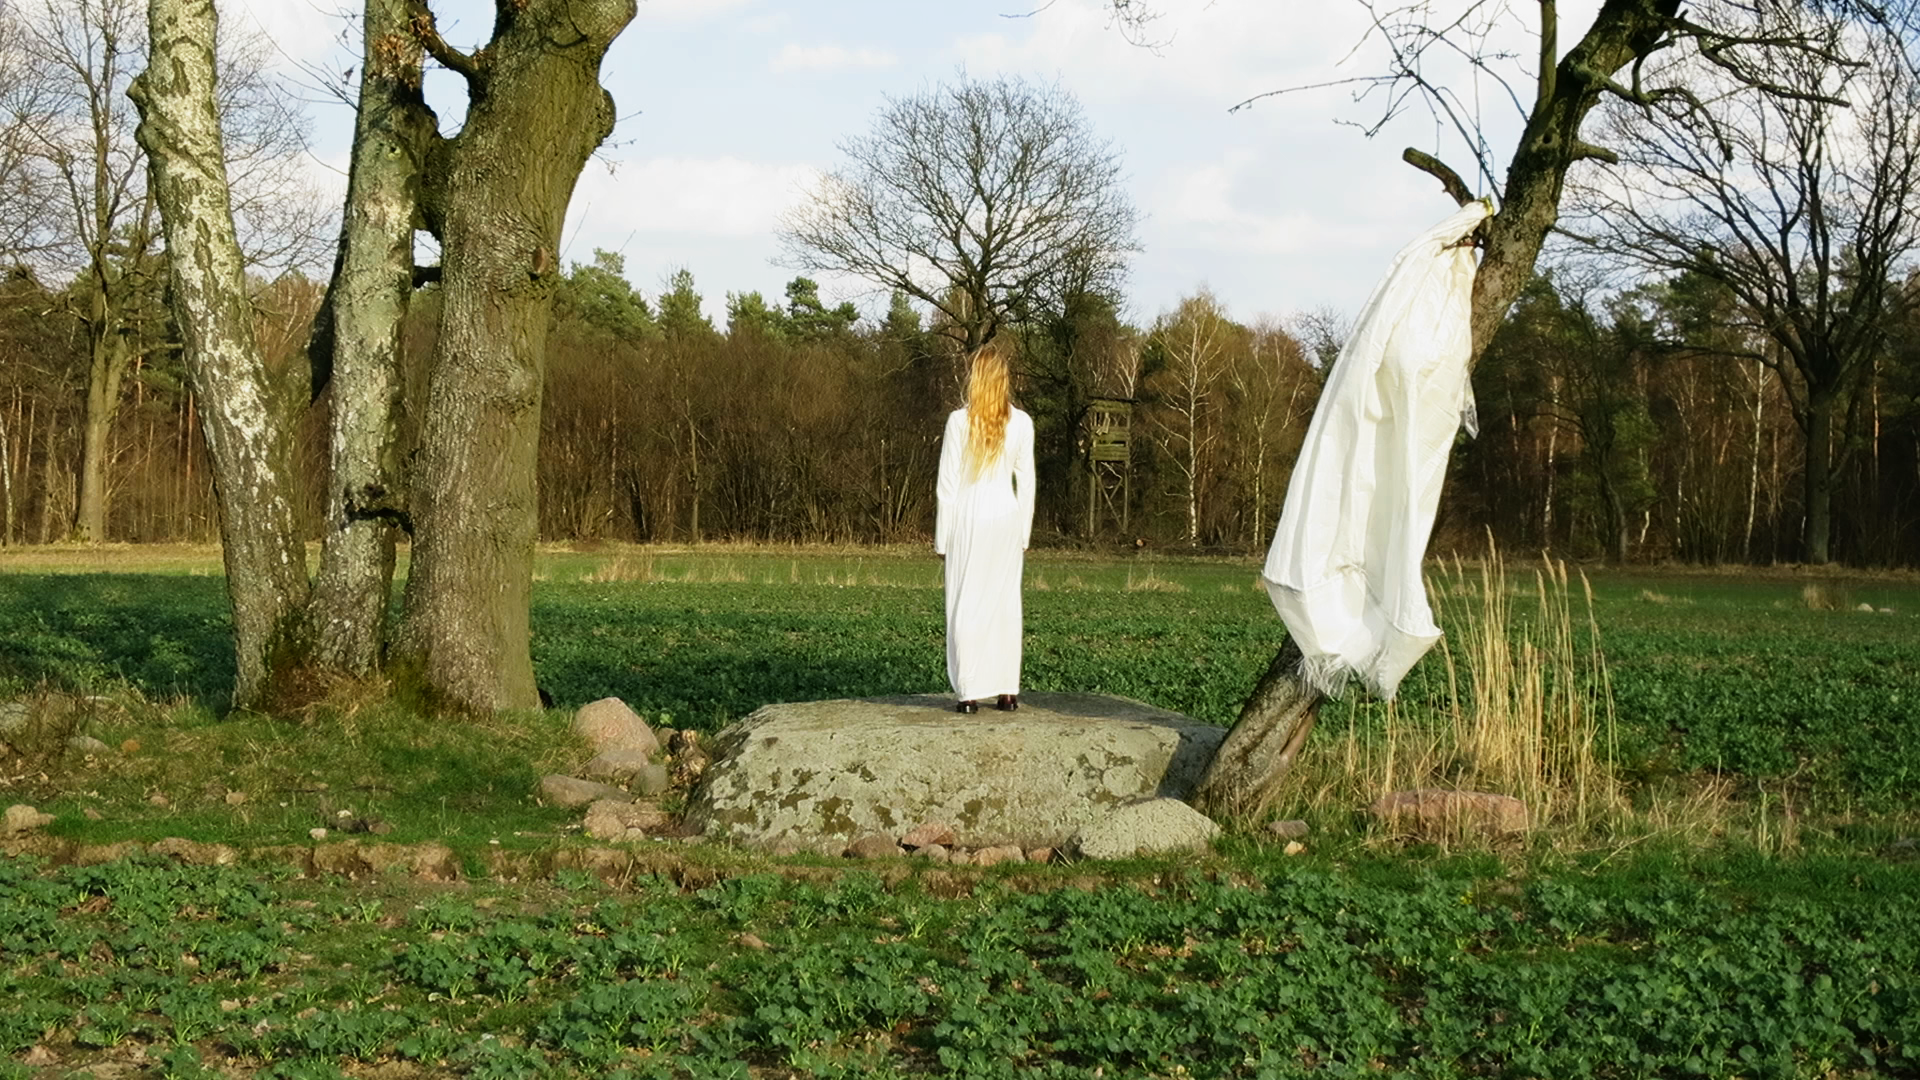 Blumenthal  Conceptual Performance Art Project, film still  Duration: ongoing, 2014 - present  2014, Blumenthal, Prötzel Stadtstelle, Germany